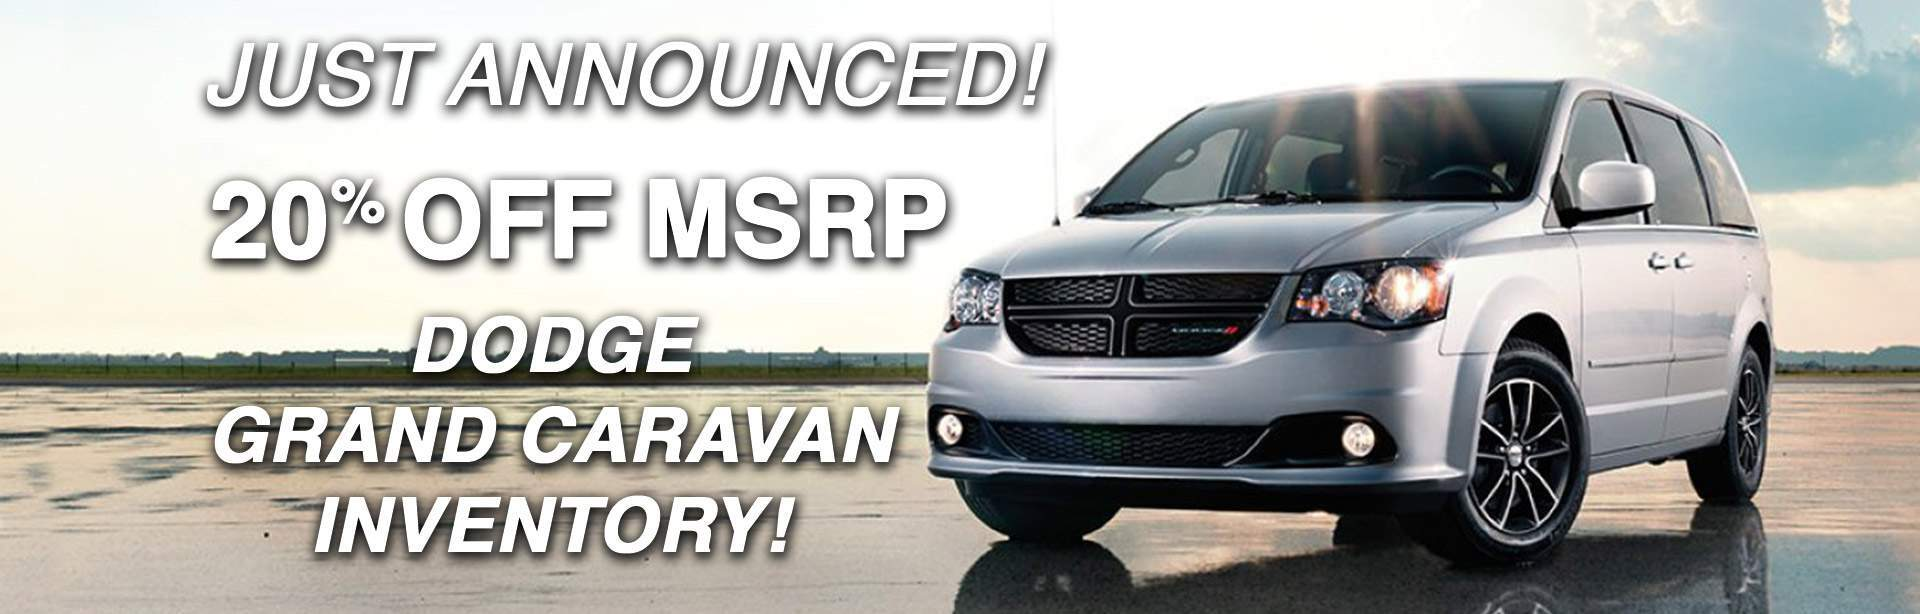 20% off MSRP on Dodge Grand Caravan